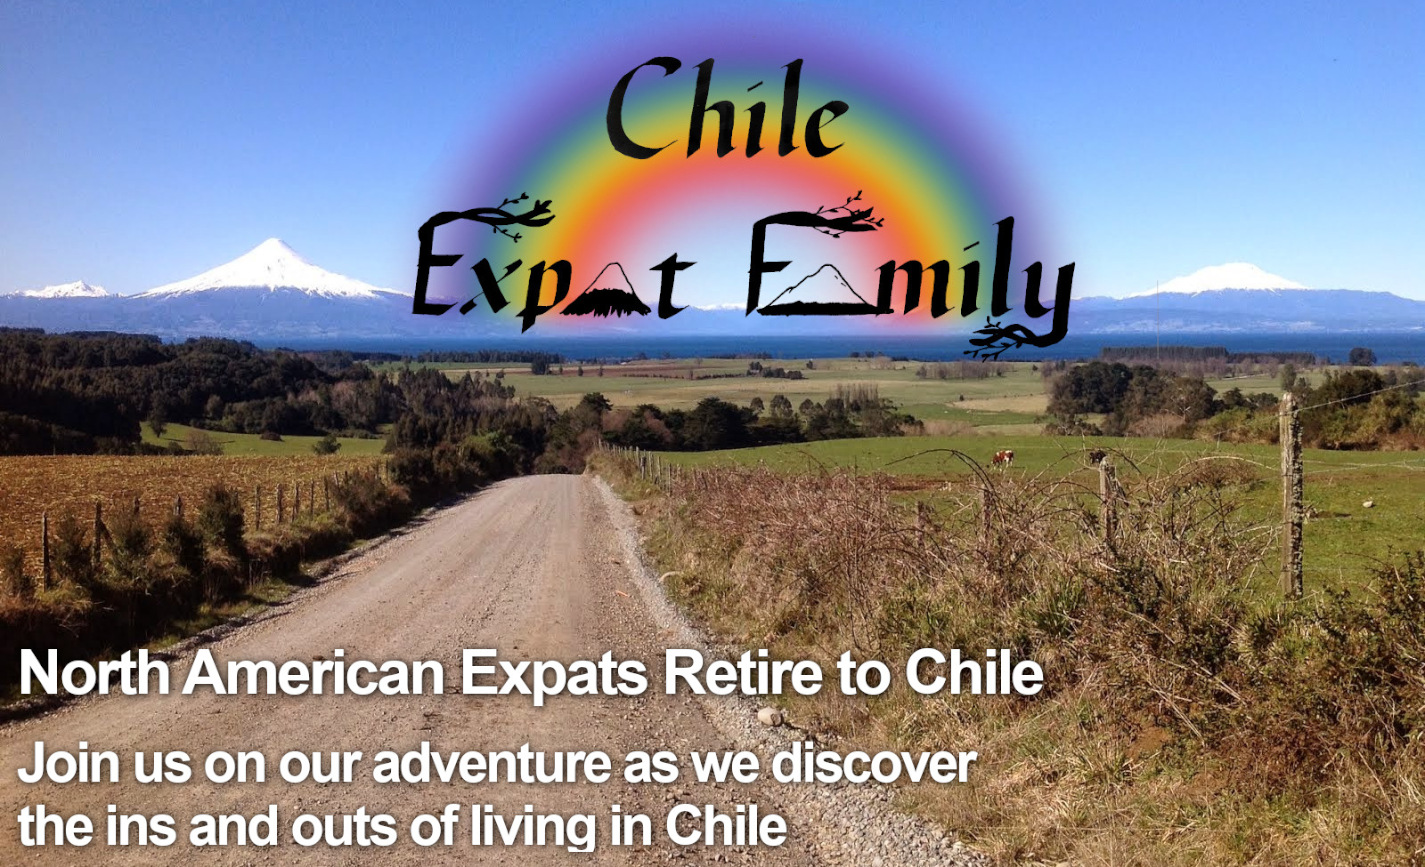 North American Expats Retire to Chile - The Land of Rainbows and Waterfalls